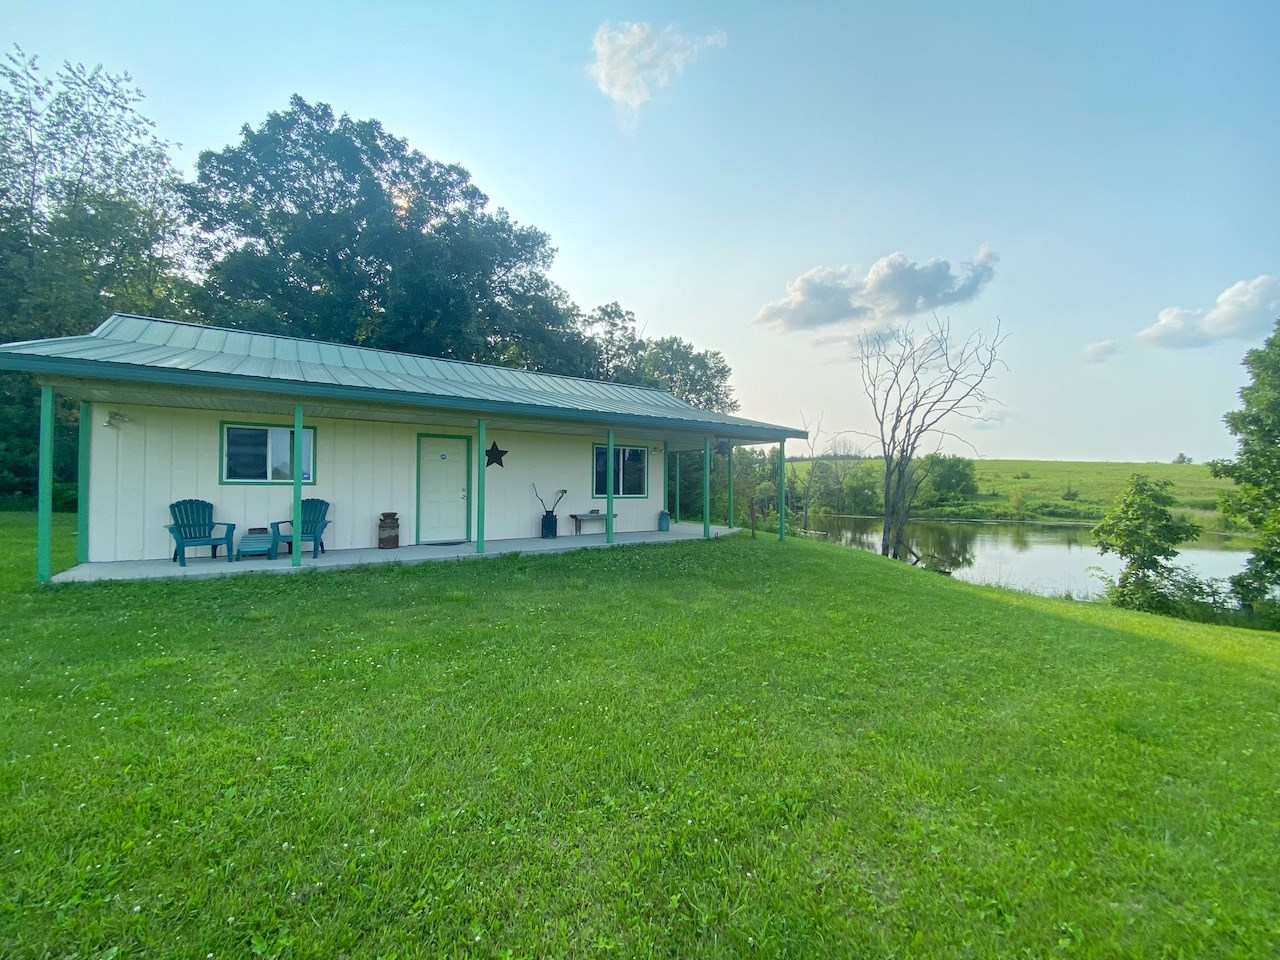 Recreational Property with Cabin For Sale in Southern Iowa